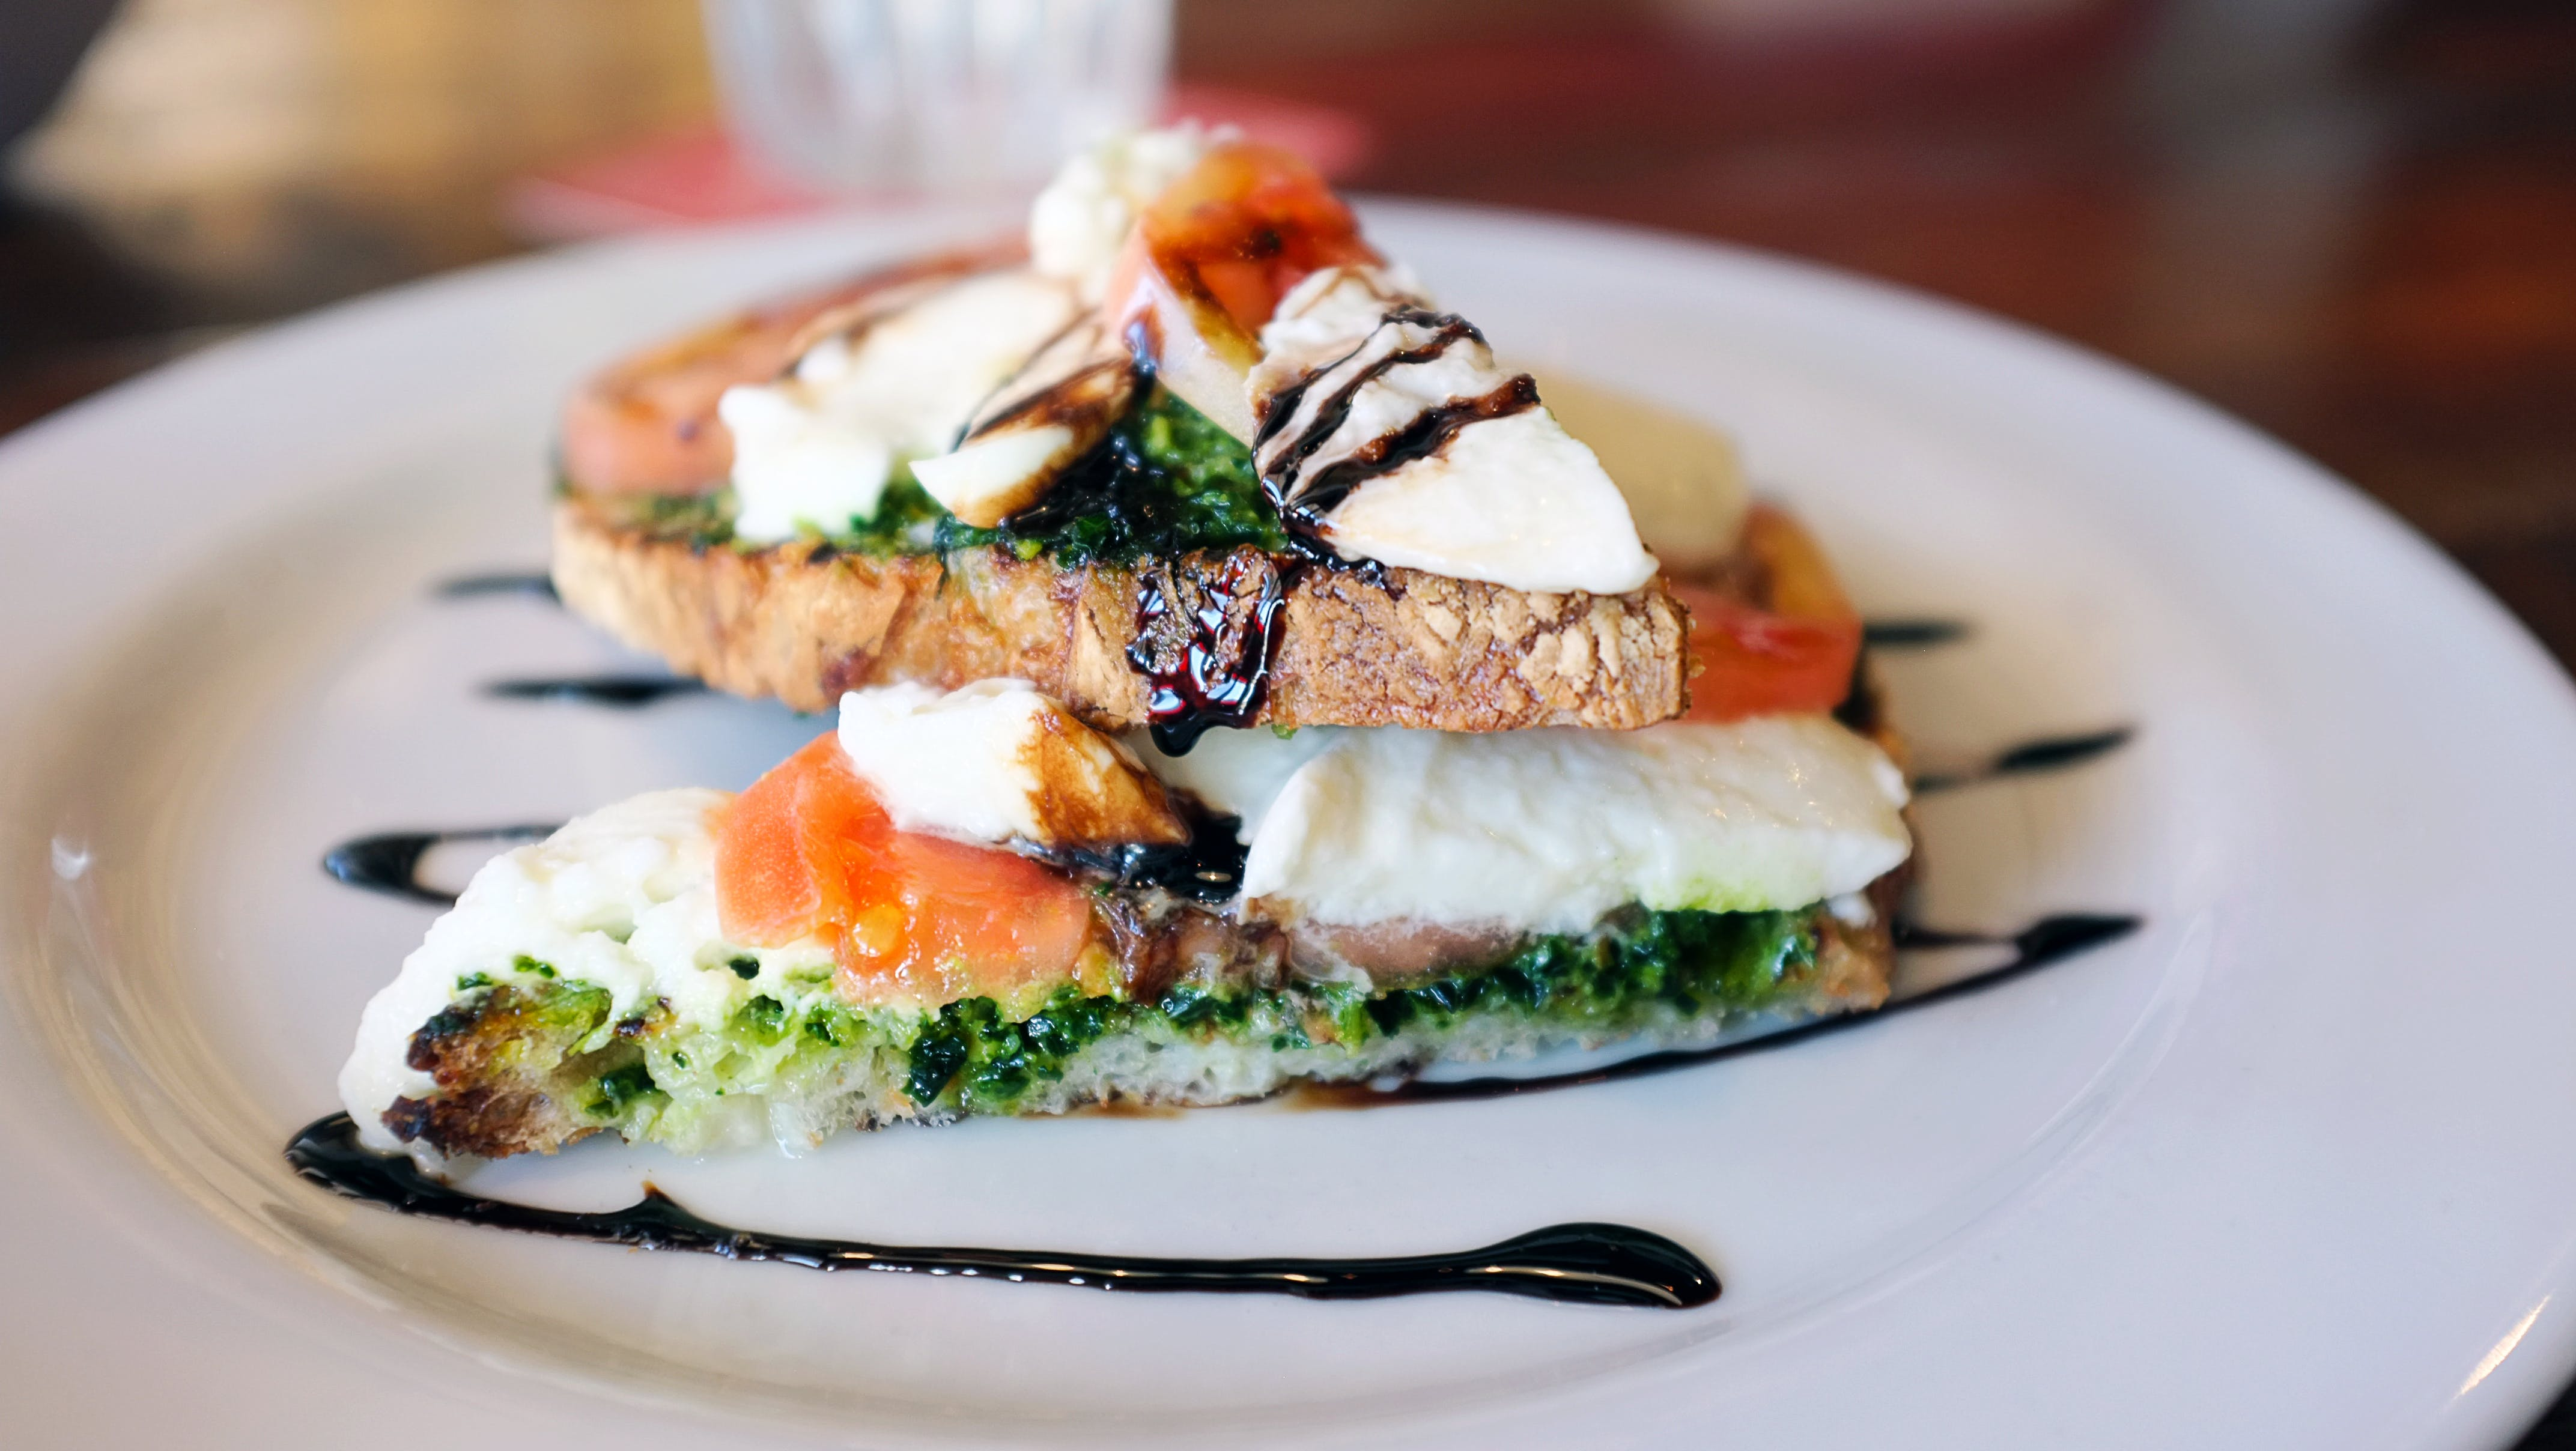 Sandwich With Toppings